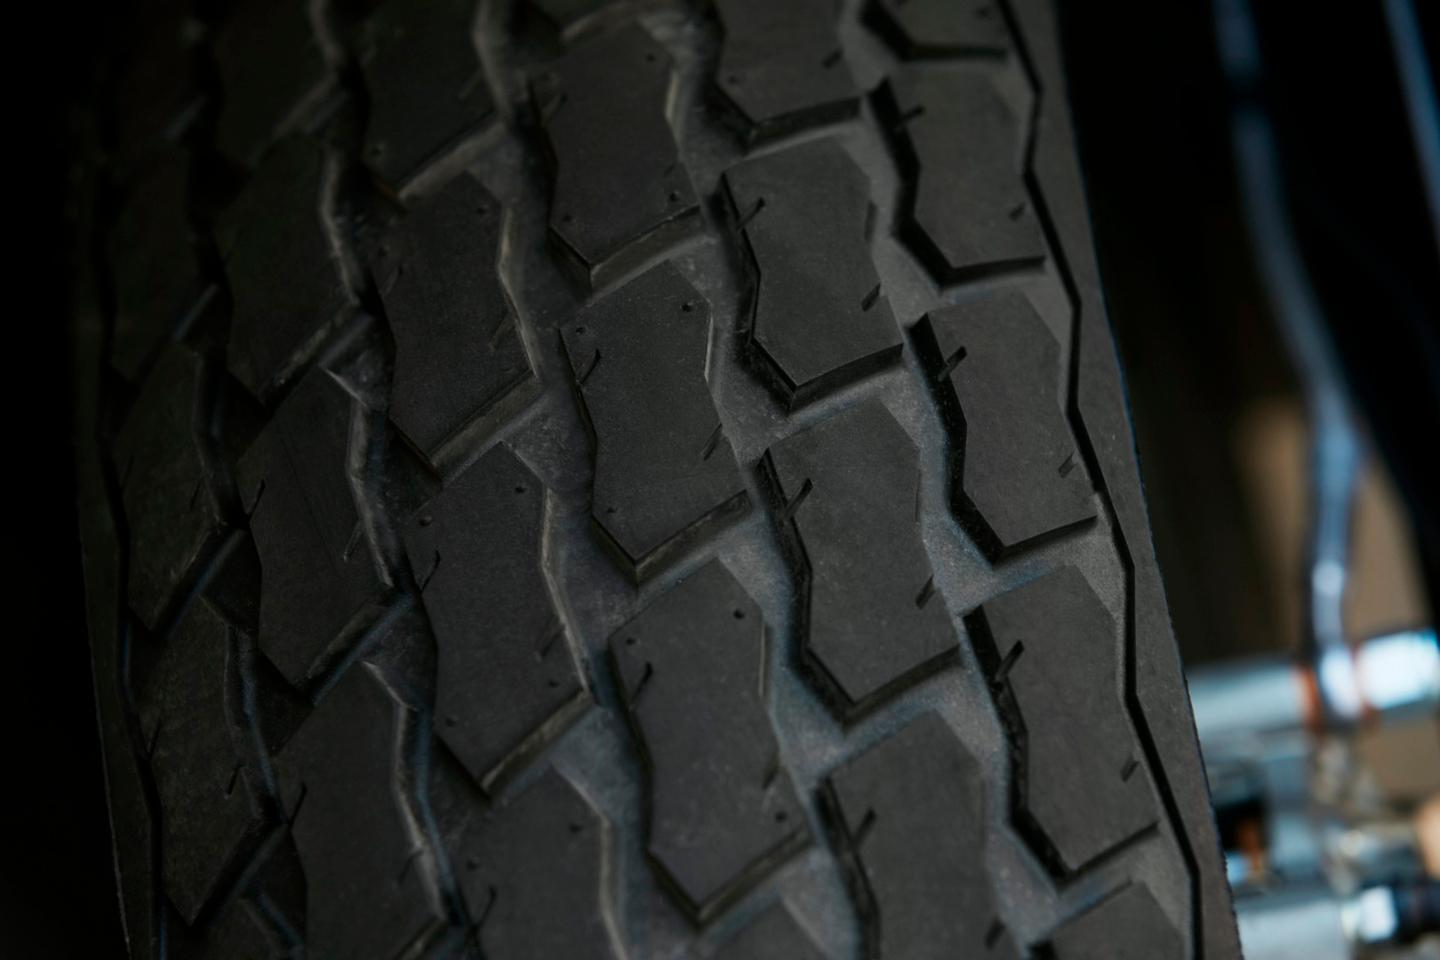 Indian FTR1200: tires are custom developments with Dunlop, emulating the look of flat track tires but with an emphasis on road grip